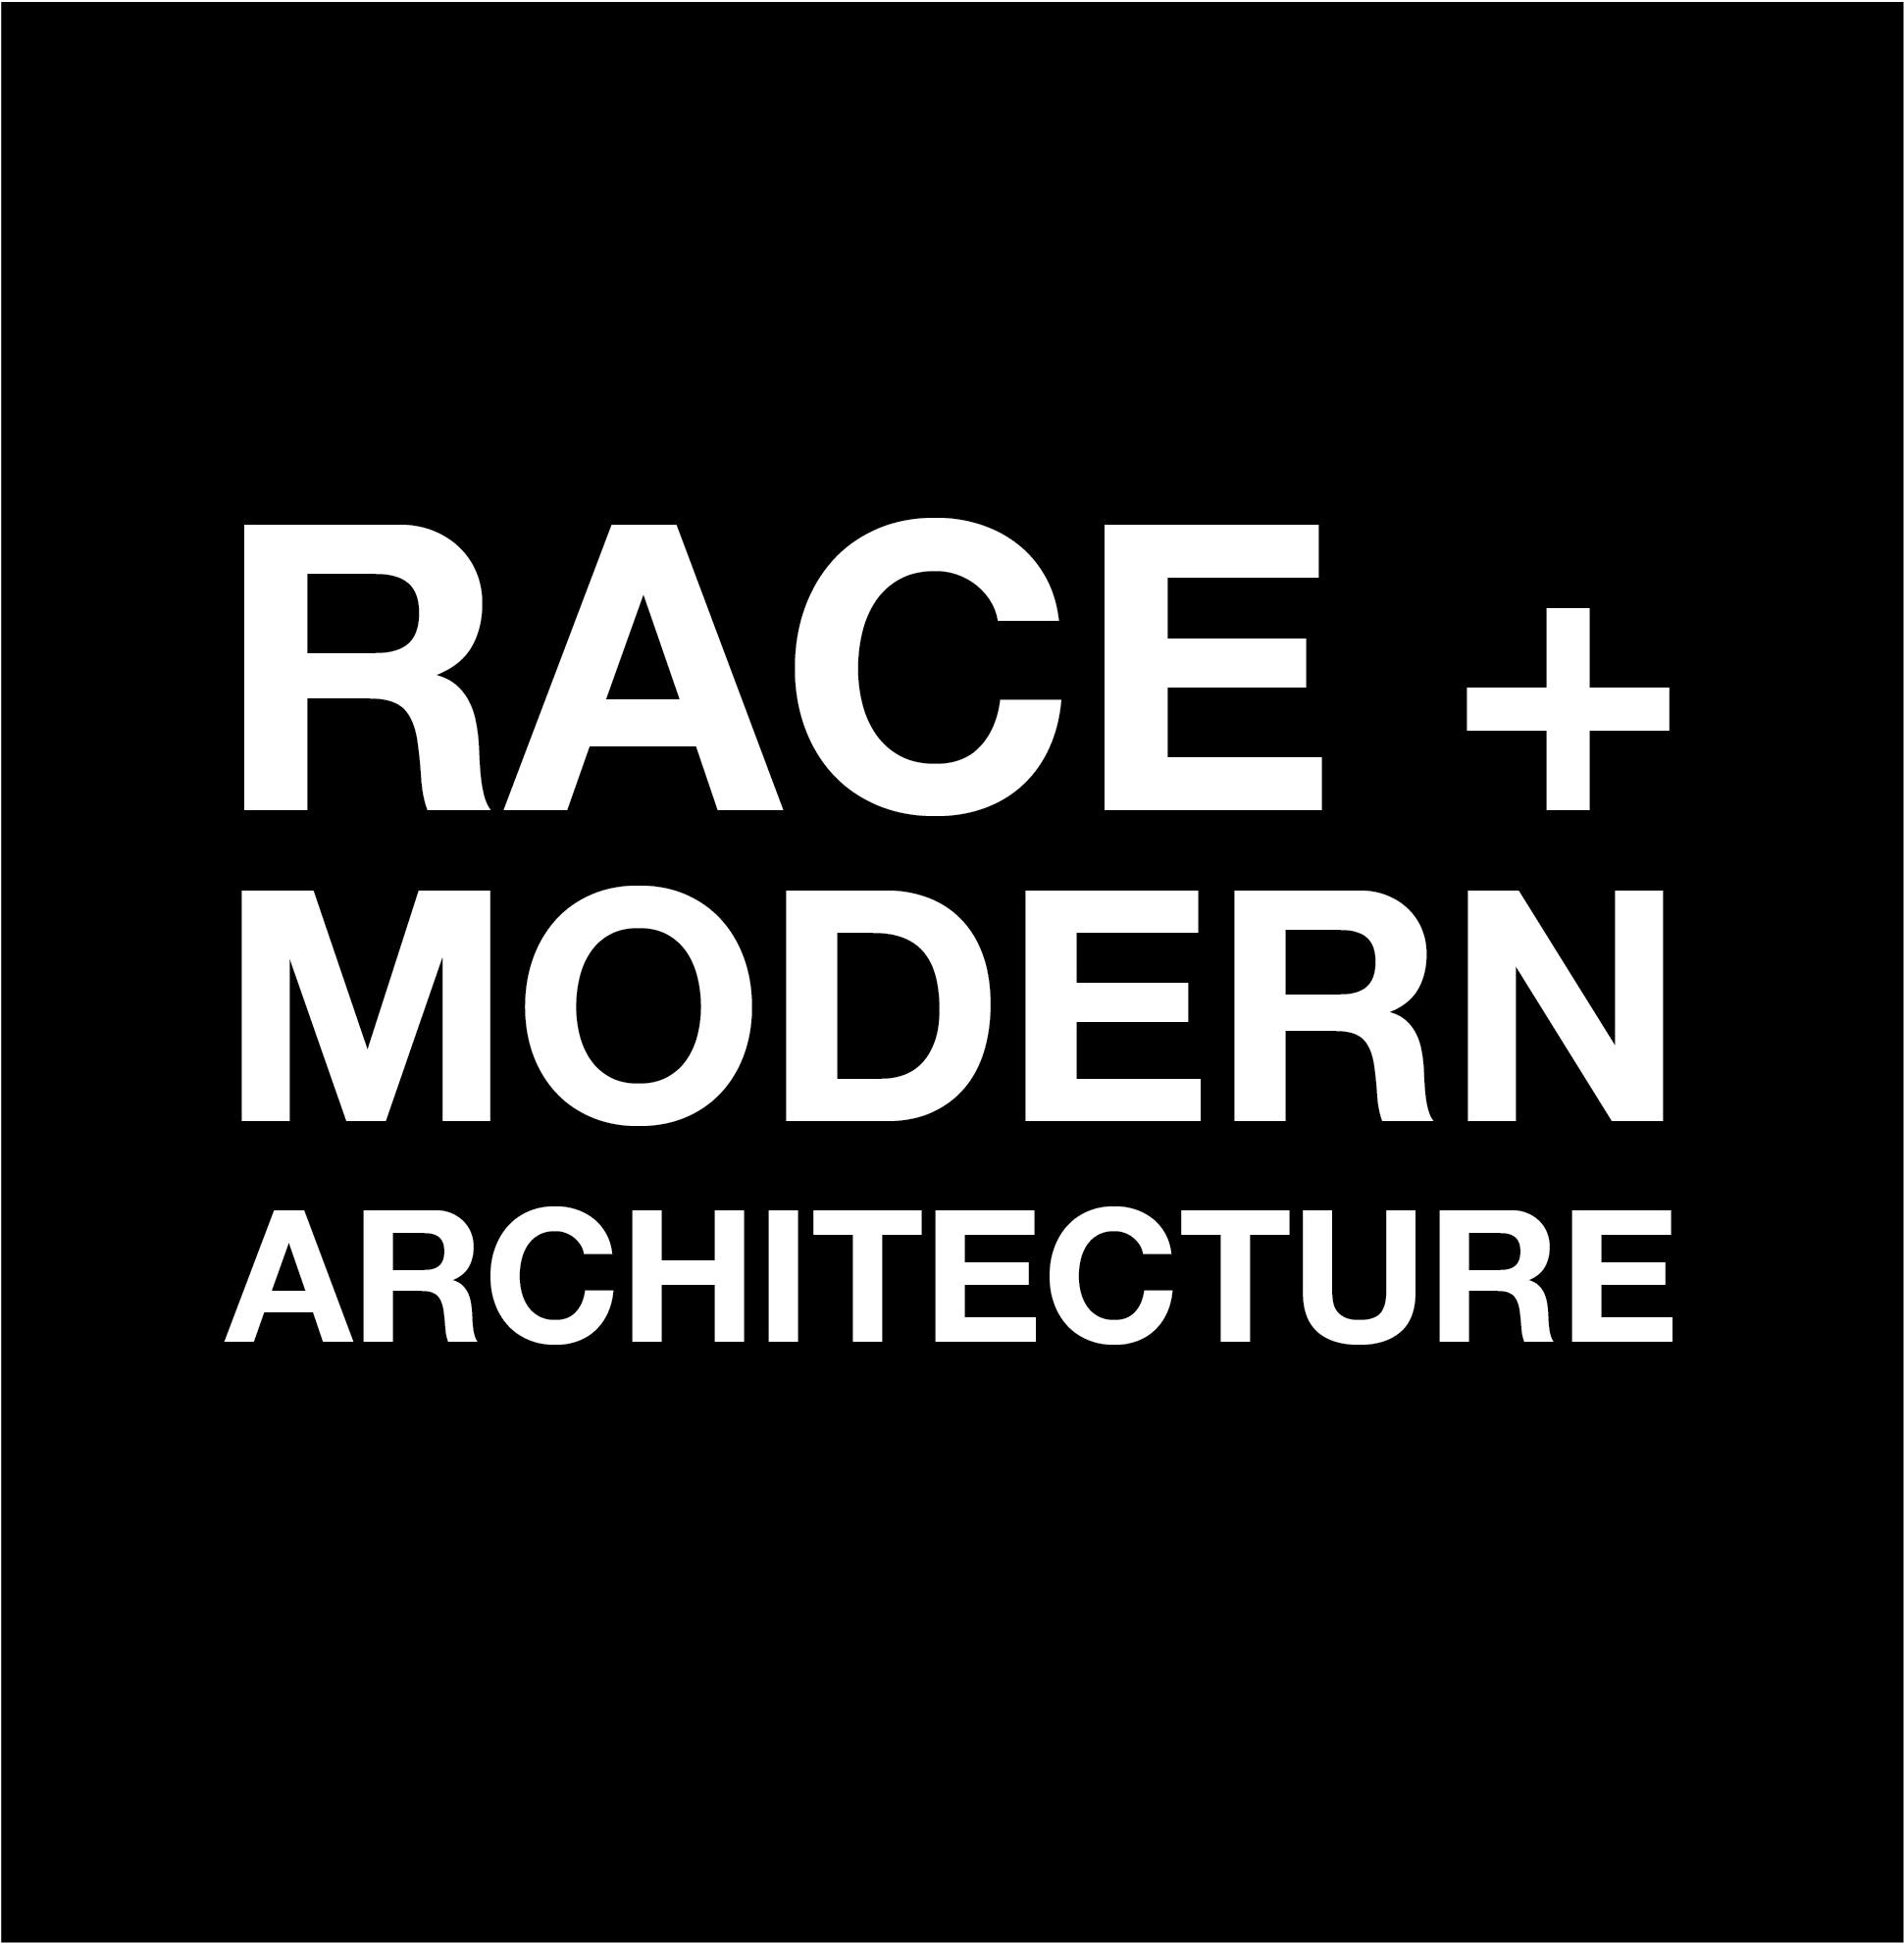 """Race + Modern Architecture Project   The """"Whiteness & American Architecture"""" symposium continues the research that began with the Race + Modern Architecture Project, a workshop conducted at Columbia University in 2013. The forthcoming co-edited volume,  Race and Modern Architecture  presents a collection of seventeen groundbreaking essays by distinguished scholars writing on the critical role of racial theory in shaping architectural discourse, from the Enlightenment to the present. The book, which grows out of a collaborative, interdisciplinary, multi-year research project, redresses longstanding neglect of racial discourses among architectural scholars. With individual essays exploring topics ranging from the role of race in eighteenth-century, Anglo-American neoclassical architecture, to 1970s radical design, the book reveals how the racial has been deployed to organize and conceptualize the spaces of modernity, from the individual building to the city to the nation to the planet."""